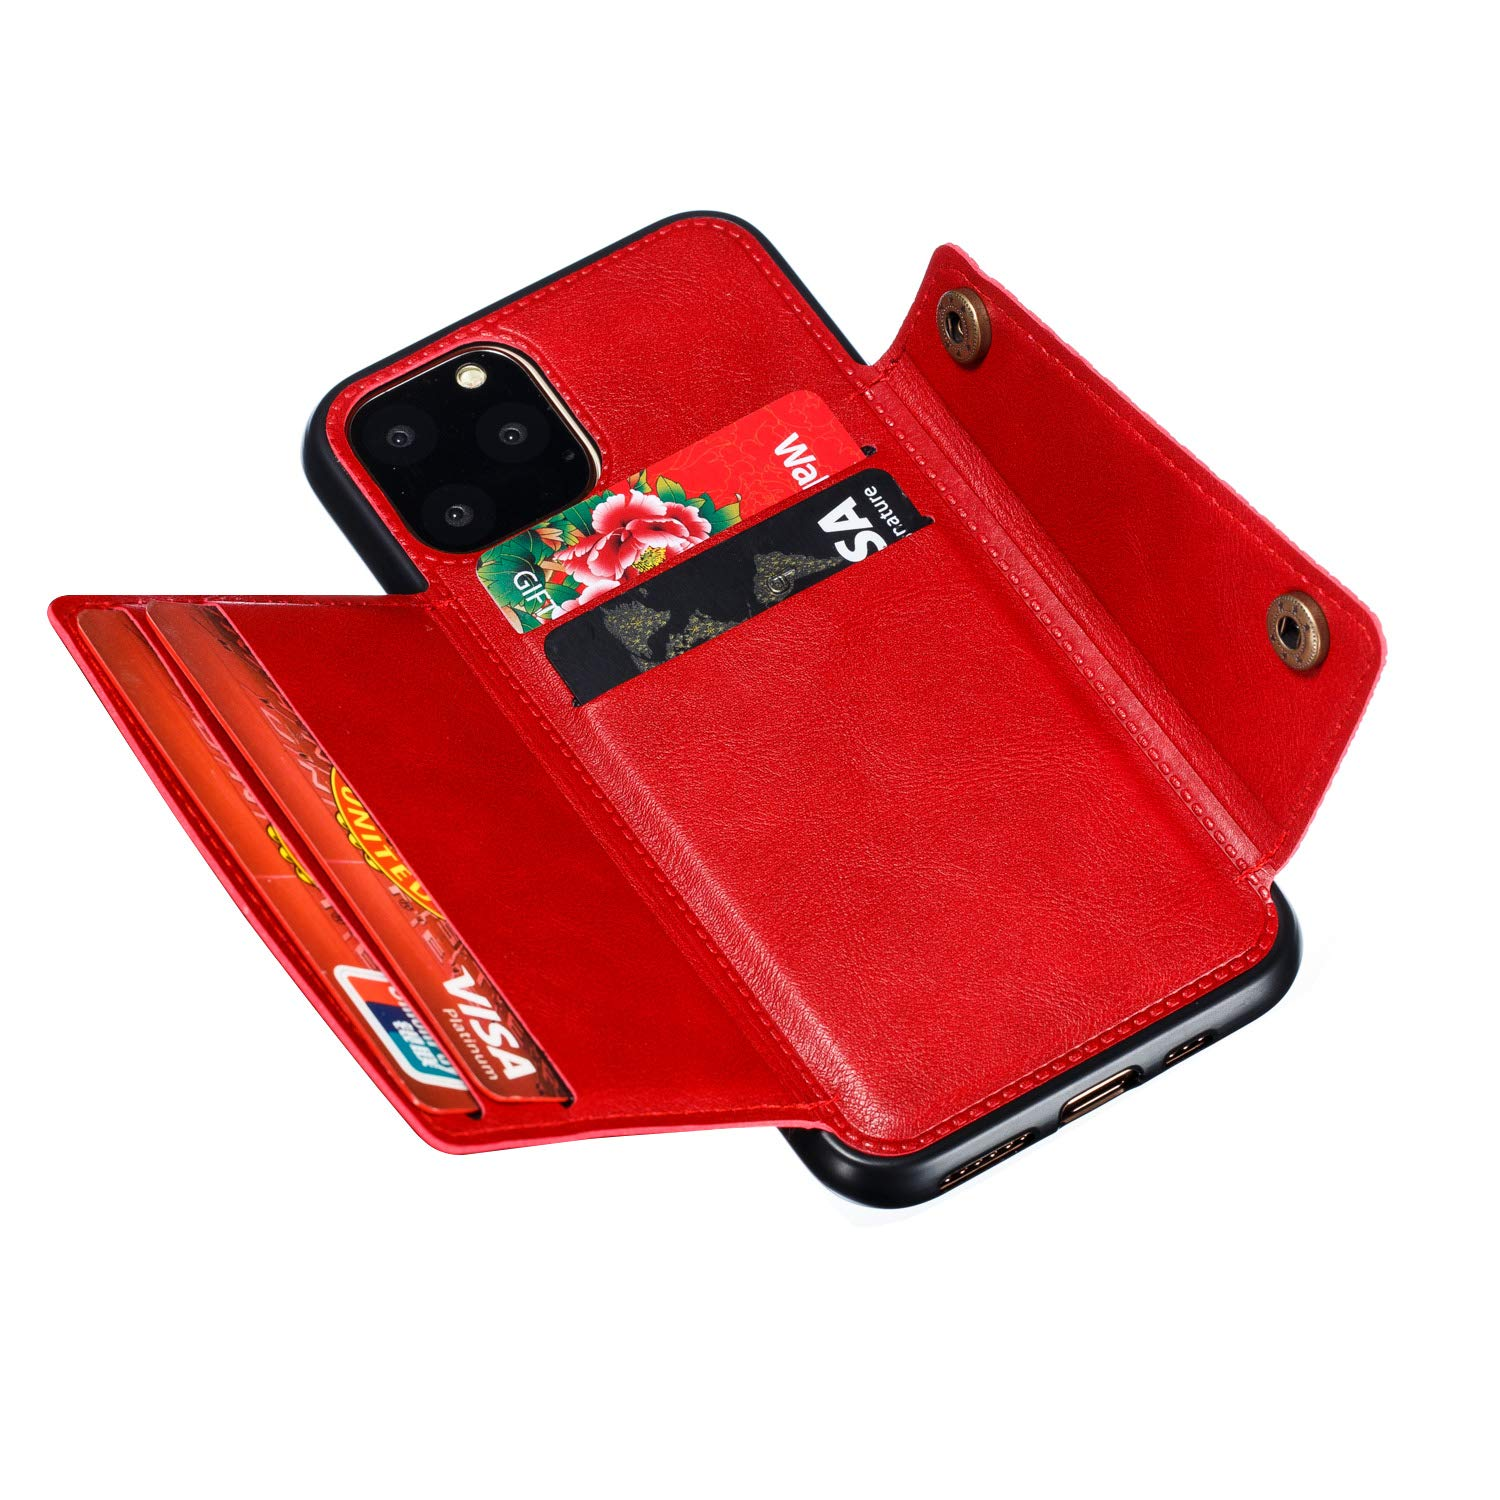 Shinyzone Case for iPhone 11 6.1 inch,Women Men Wallet Case with Card Slot Holder,Flip Leather PU Back Cover with Magnetic Buckle Closure Compatible with Magnetic Car Mount,Red